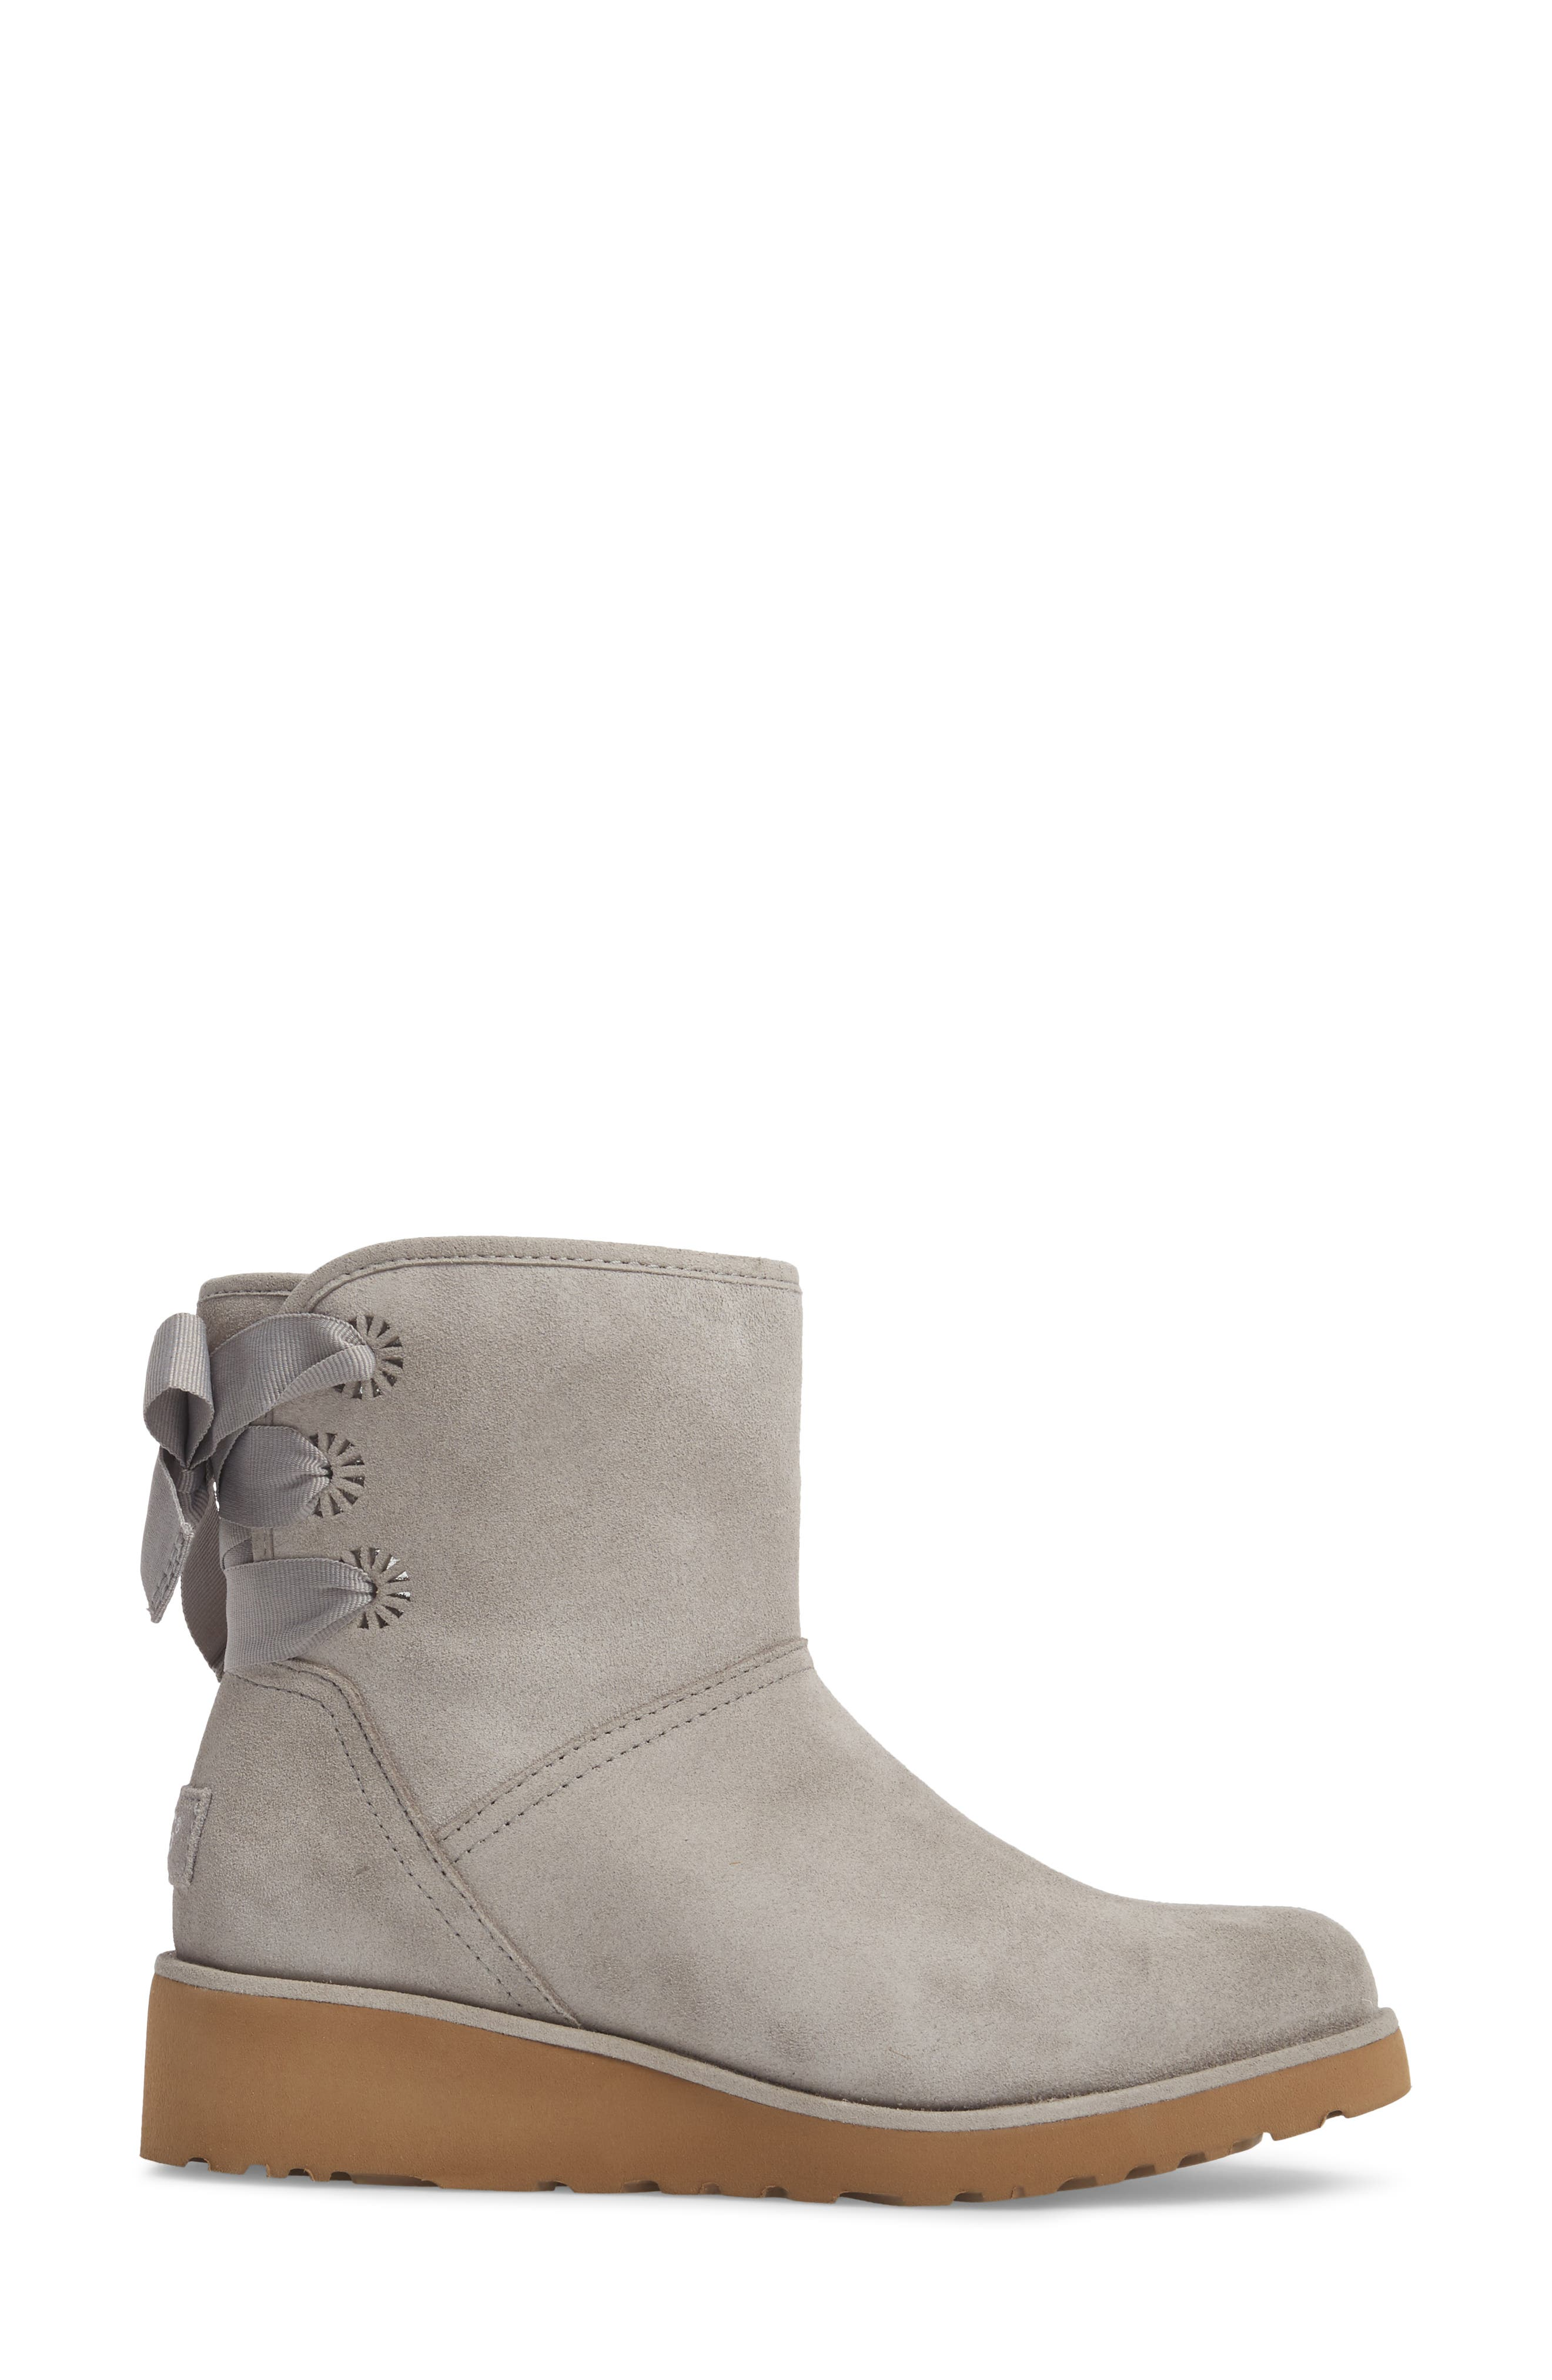 Drew Sunshine Perforated Tie Back Boot,                             Alternate thumbnail 7, color,